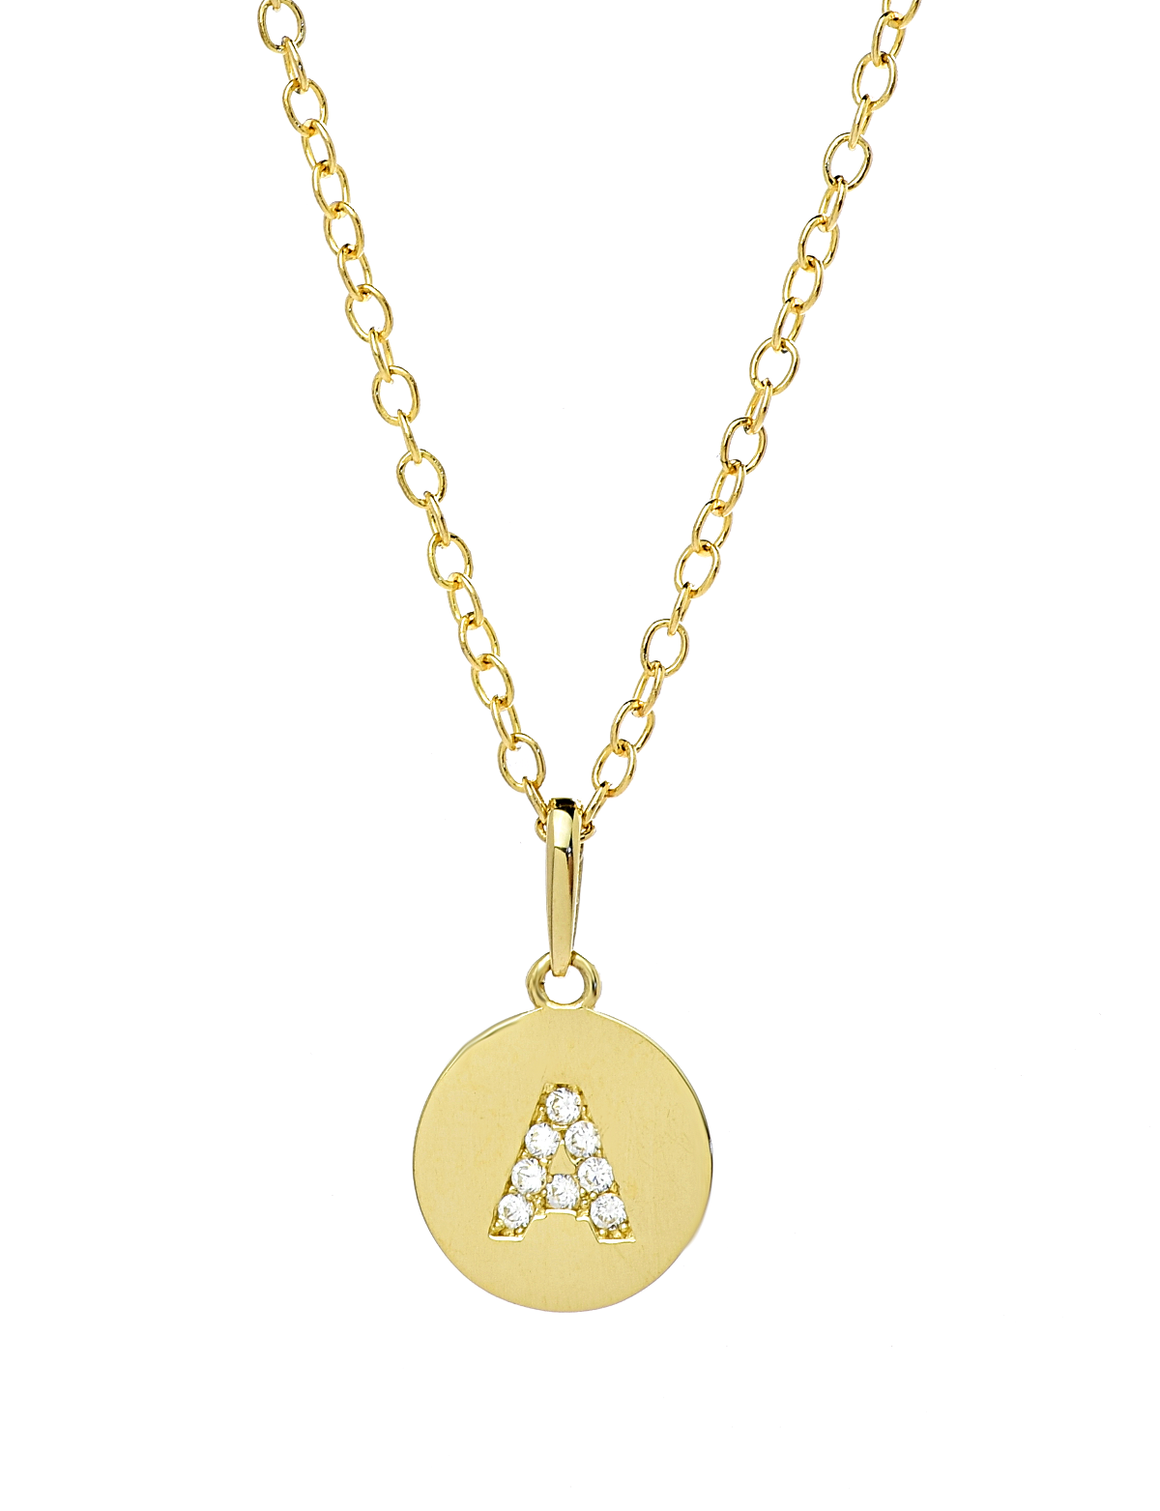 Initial Disc Pendant Necklace in14K Yellow Gold with CZ Stones - Anny Gabriella NY